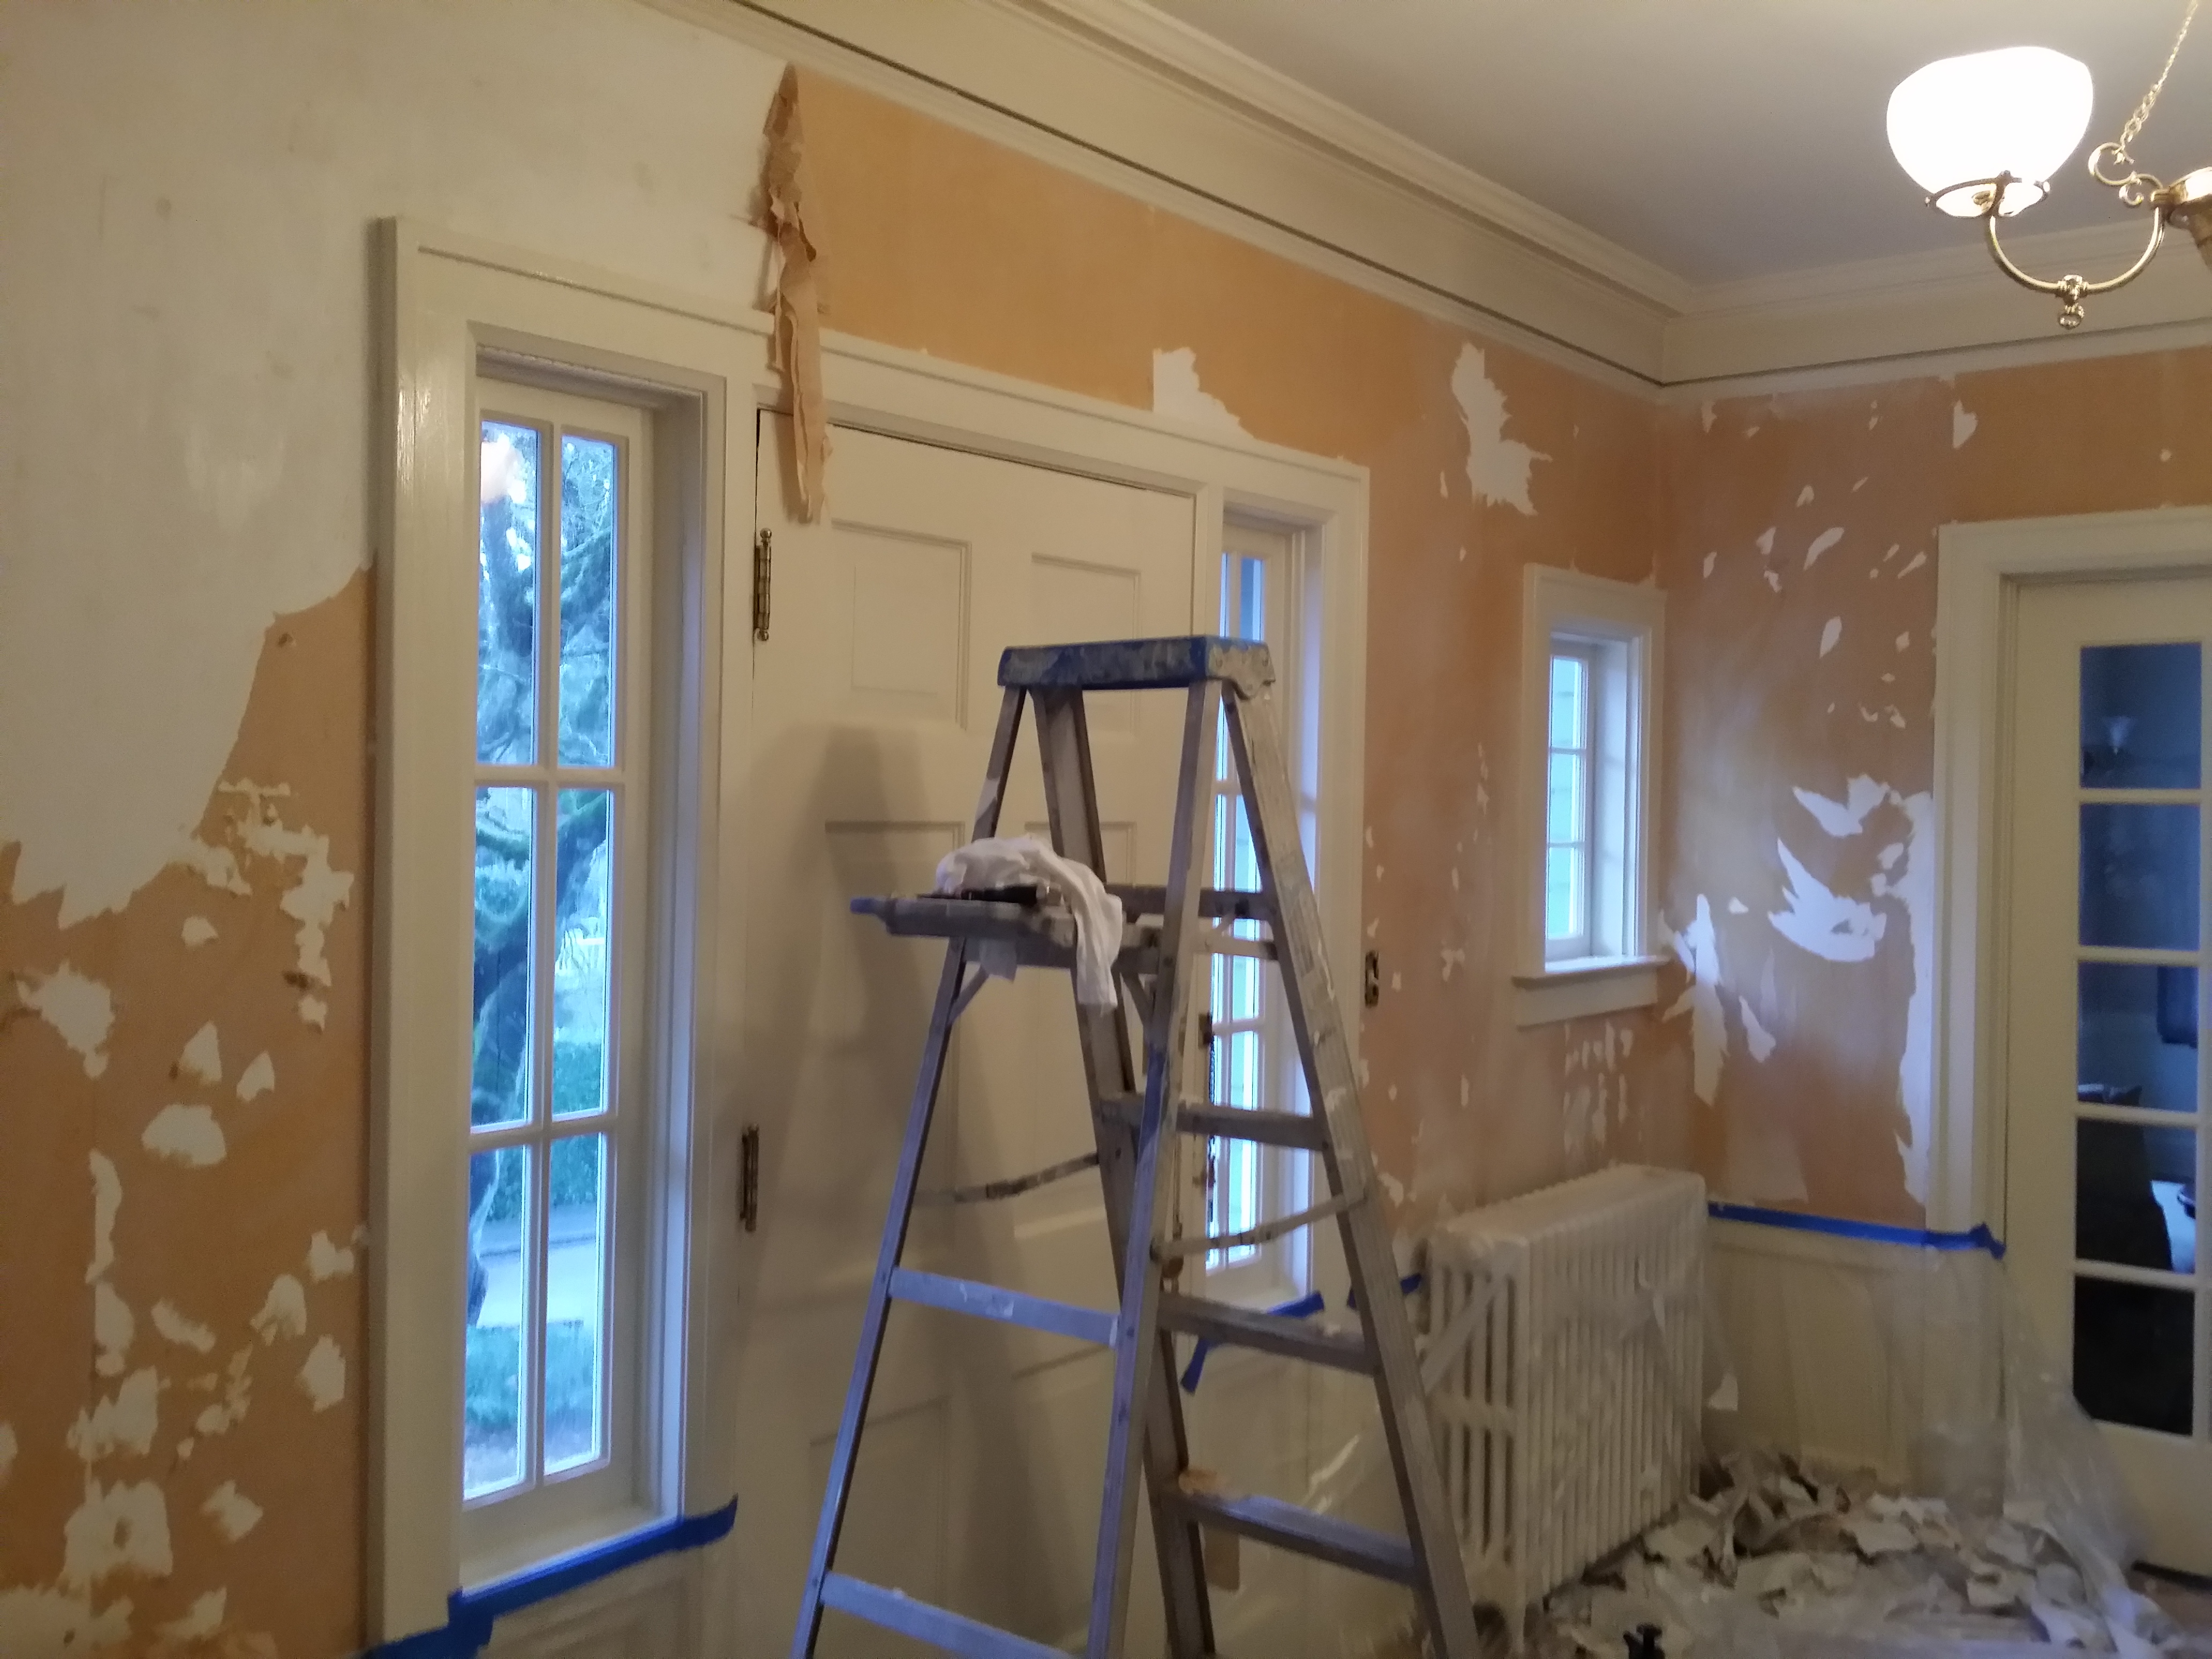 Wallpaper Removal Portland Painting Contractors Portland House Painters Cascade Painting And Restoration Cascade Painting Restoration